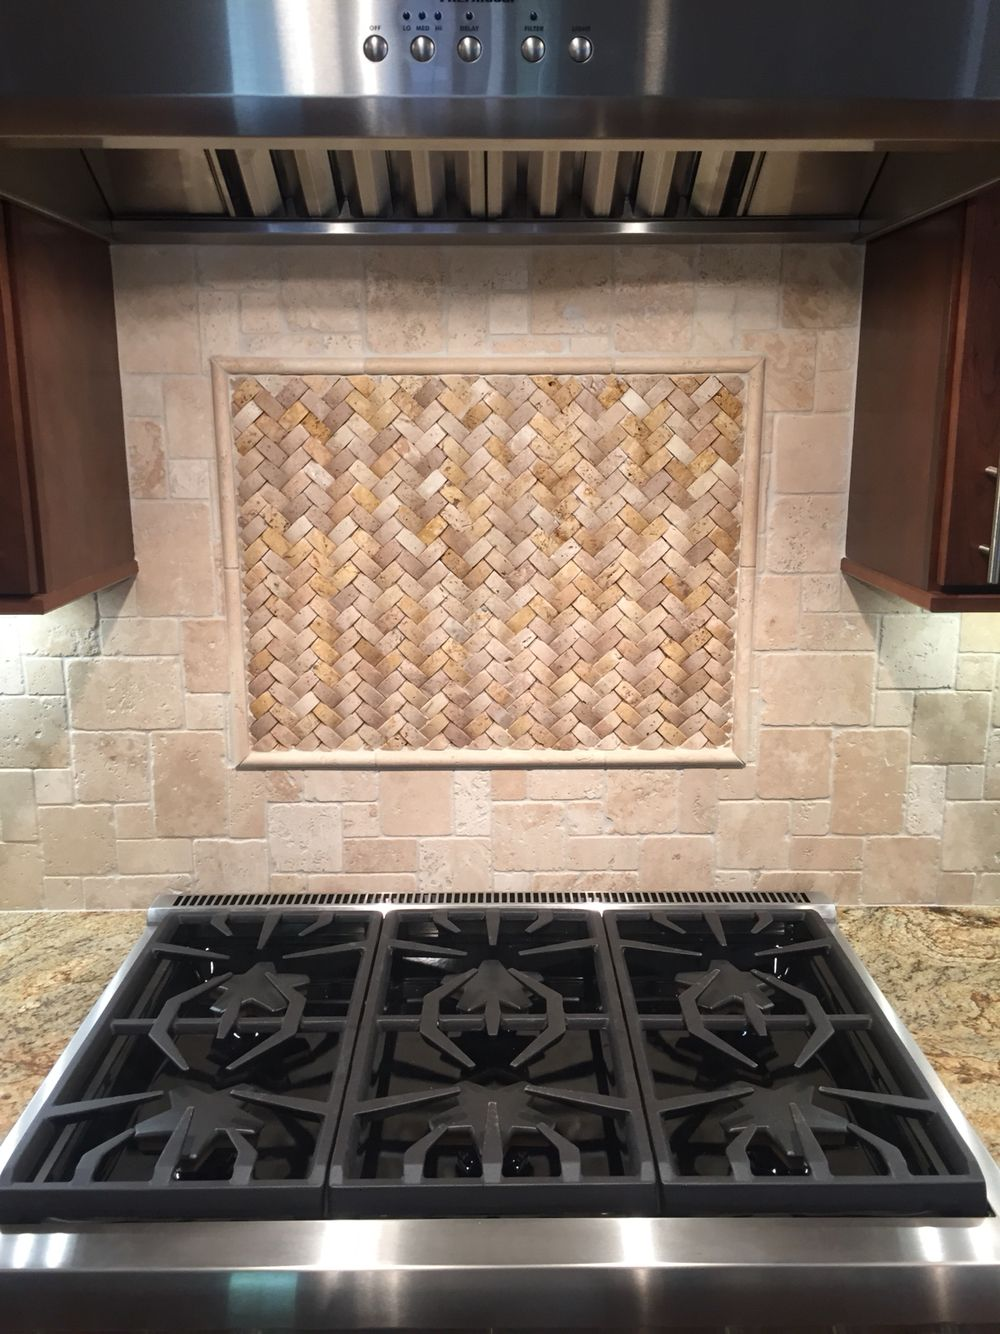 Merveilleux Nice Basketweave 3D Brown Stone Backsplash Insert.   In A Different Color  Though